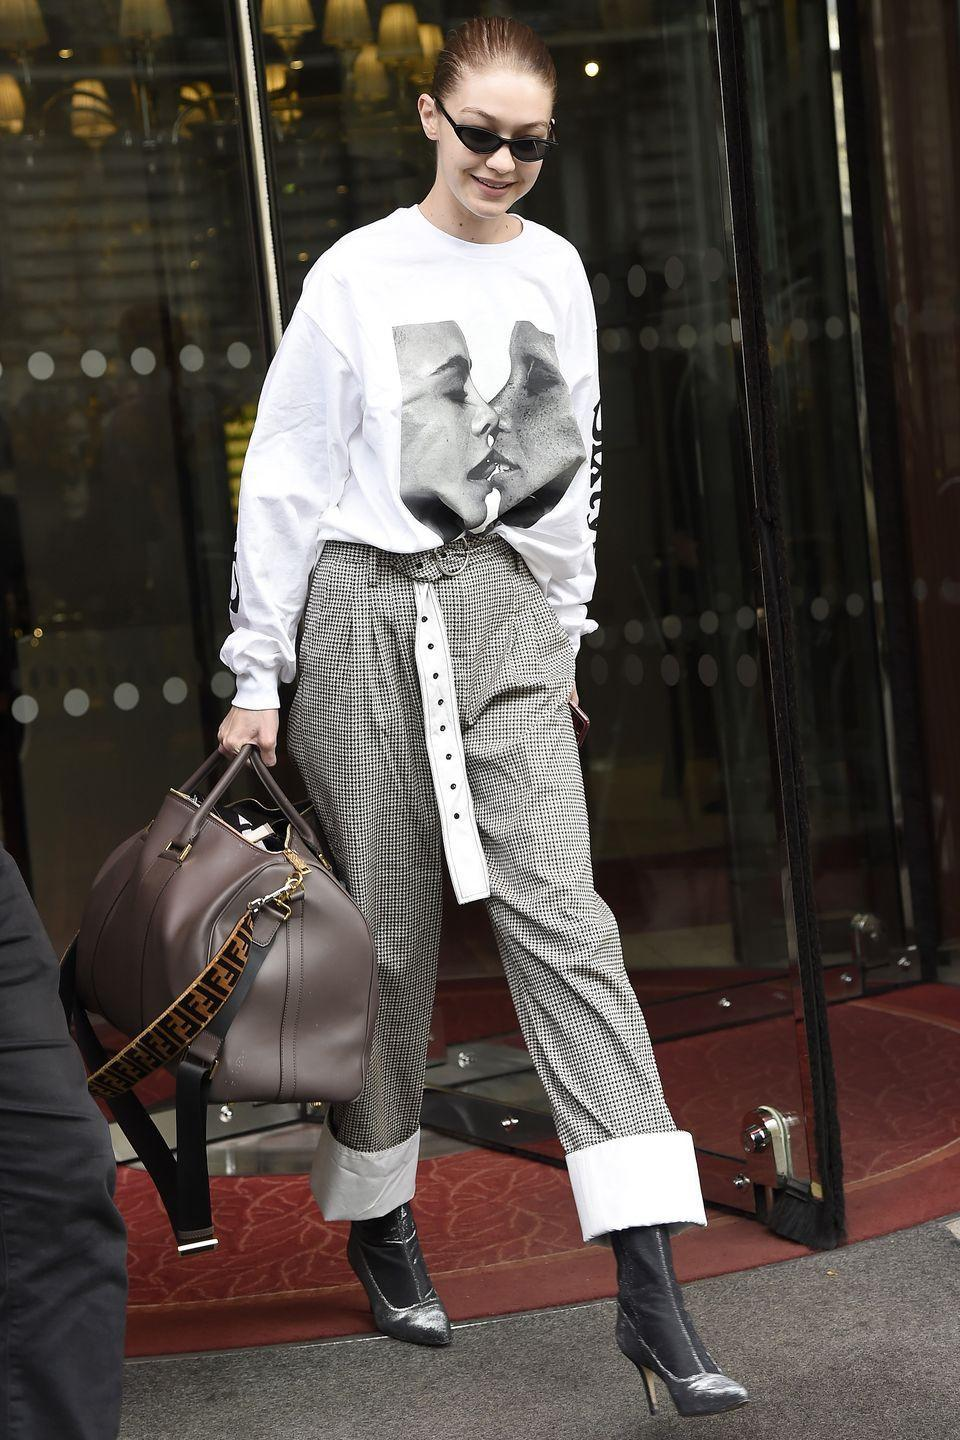 """<p>In a Chaos SixtyNine graphic tee (featuring Cara Delevingne and Adwoa Aboah's <a href=""""https://hypebae.com/2017/11/cara-delevingne-adwoa-aboah-kendall-jenner-chaos-sixtynine-cover"""" rel=""""nofollow noopener"""" target=""""_blank"""" data-ylk=""""slk:kissing cover shot"""" class=""""link rapid-noclick-resp"""">kissing cover shot</a>), cuffed houndstooth trousers, sock boots, Fendi duffle bag, and cateye sunglasses while out in Paris.</p>"""